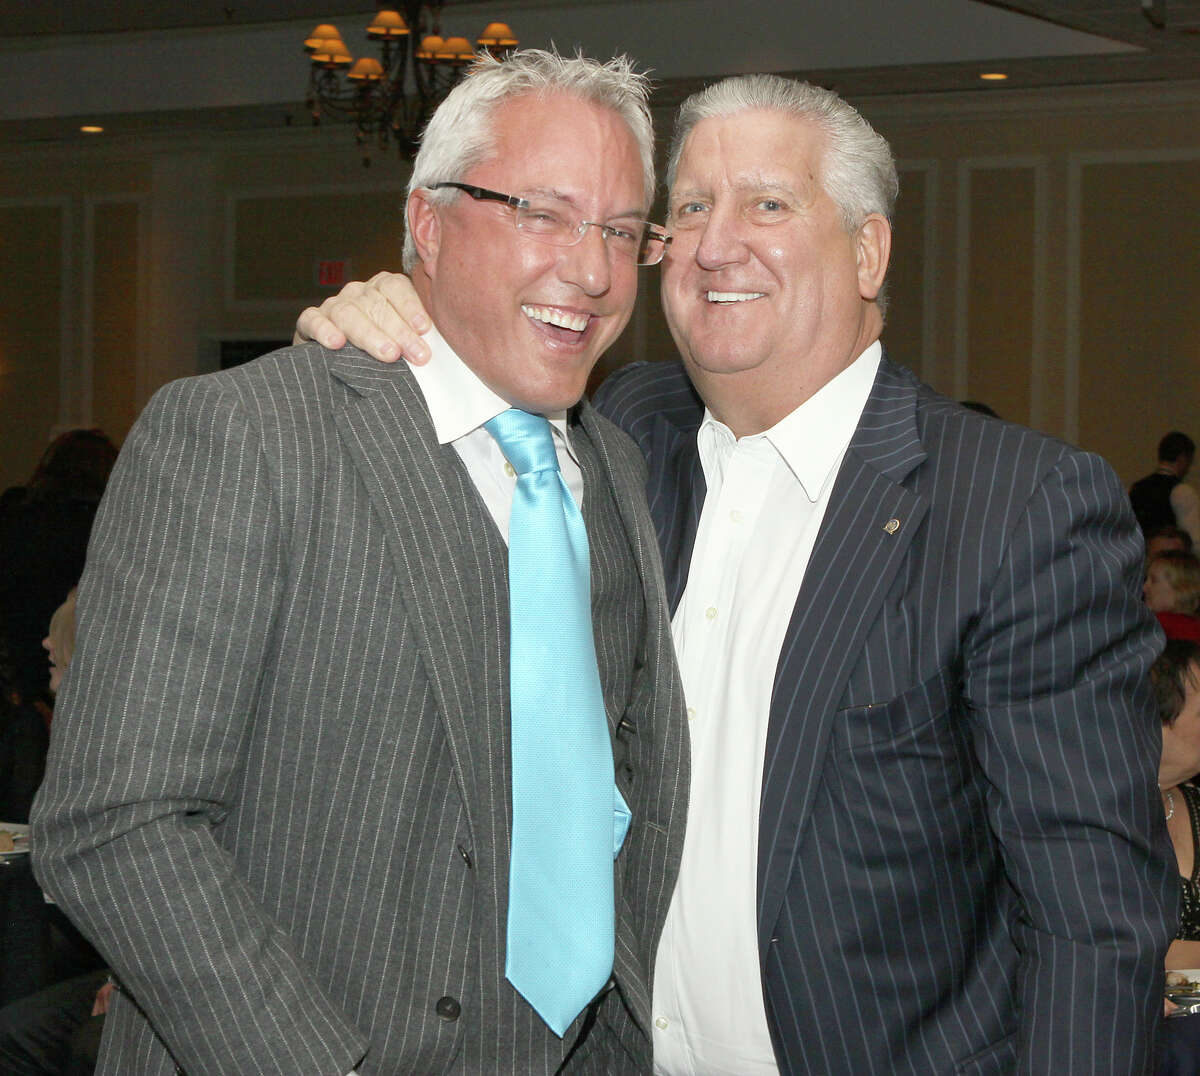 Joseph Nicolla, left, and then-Mayor Jerry Jennings at a 2012 benefit for Capital Region arts organizations. (Times Union file photo)